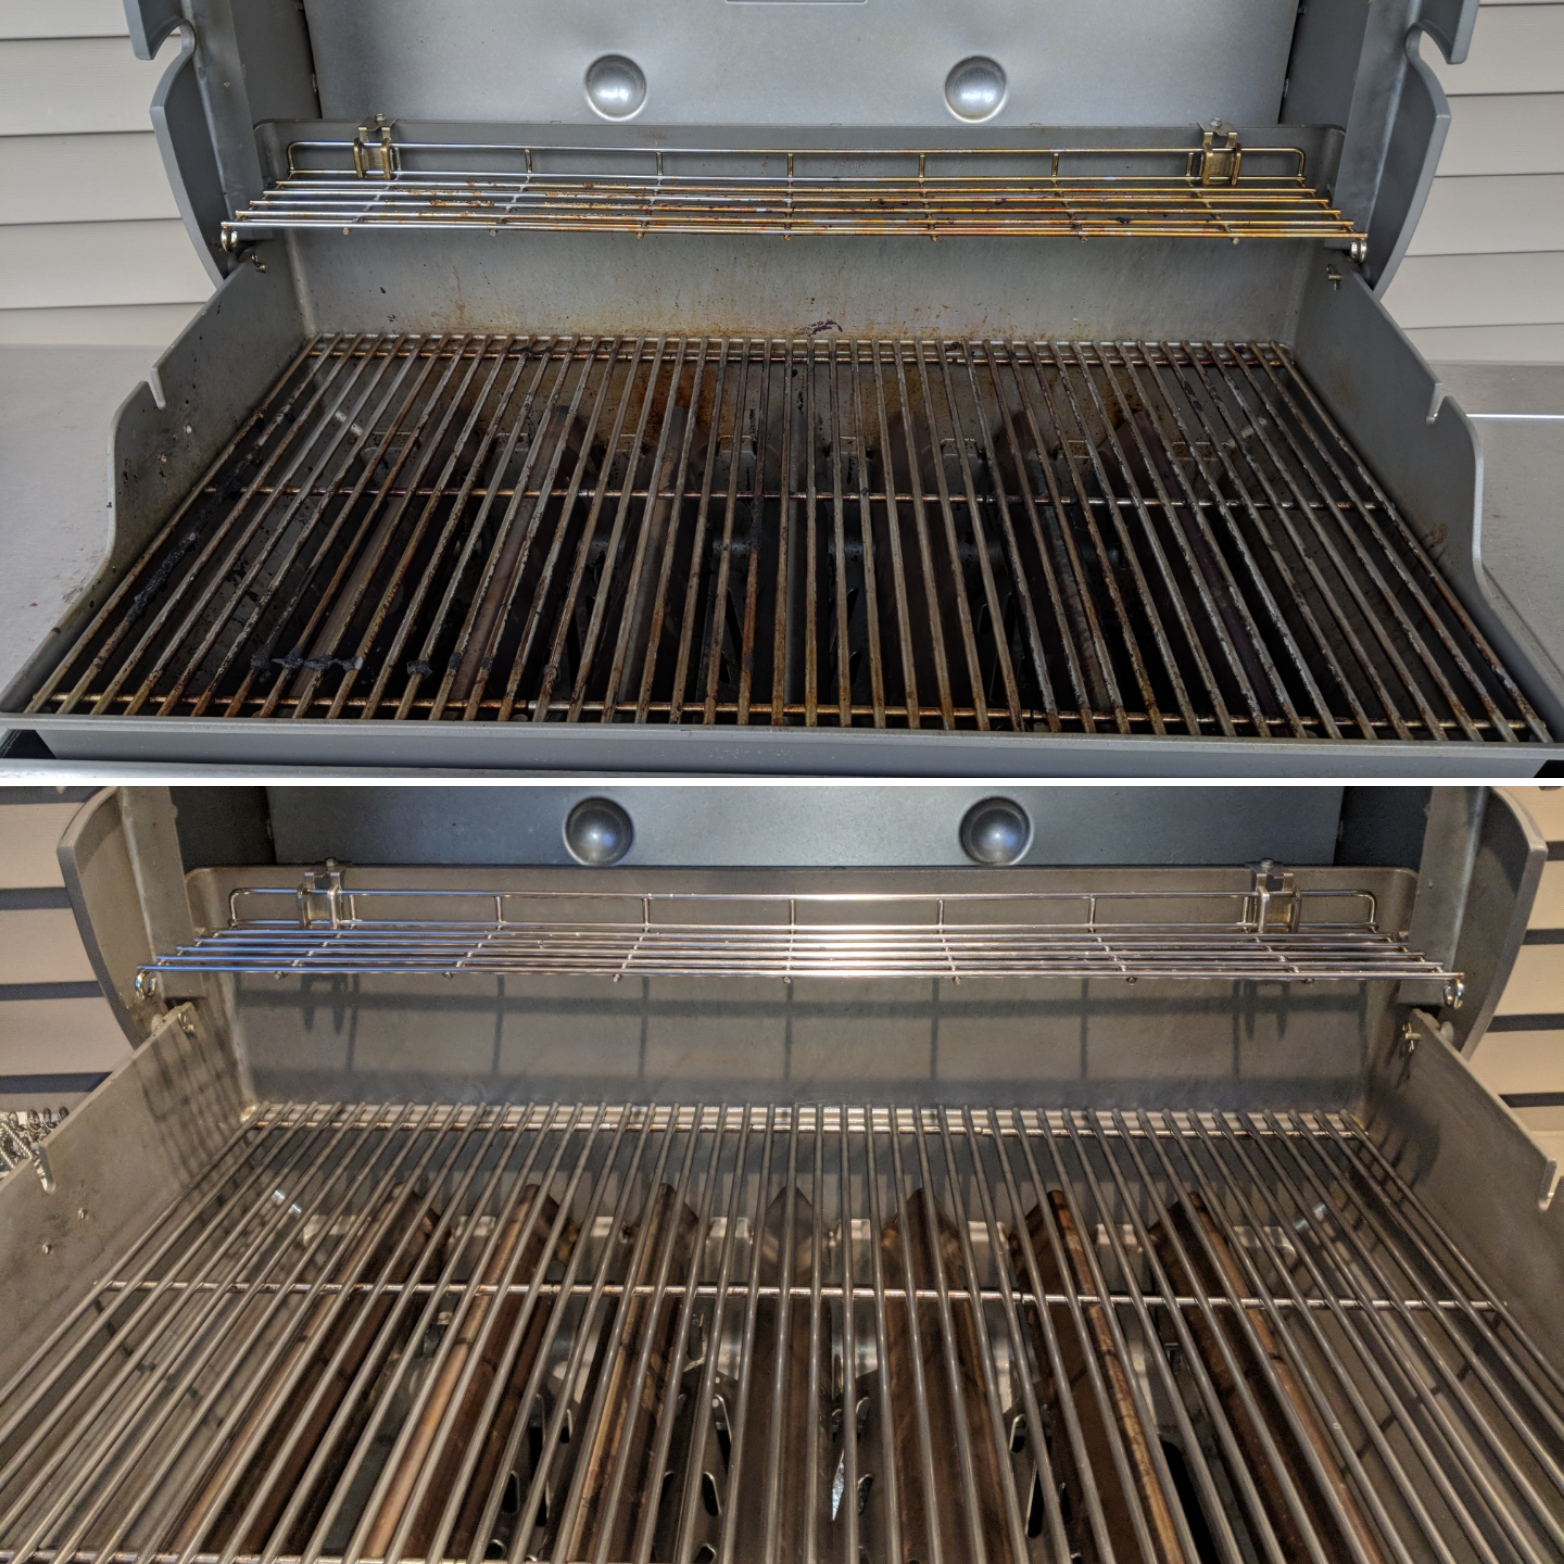 Indoor Barbecue Grill